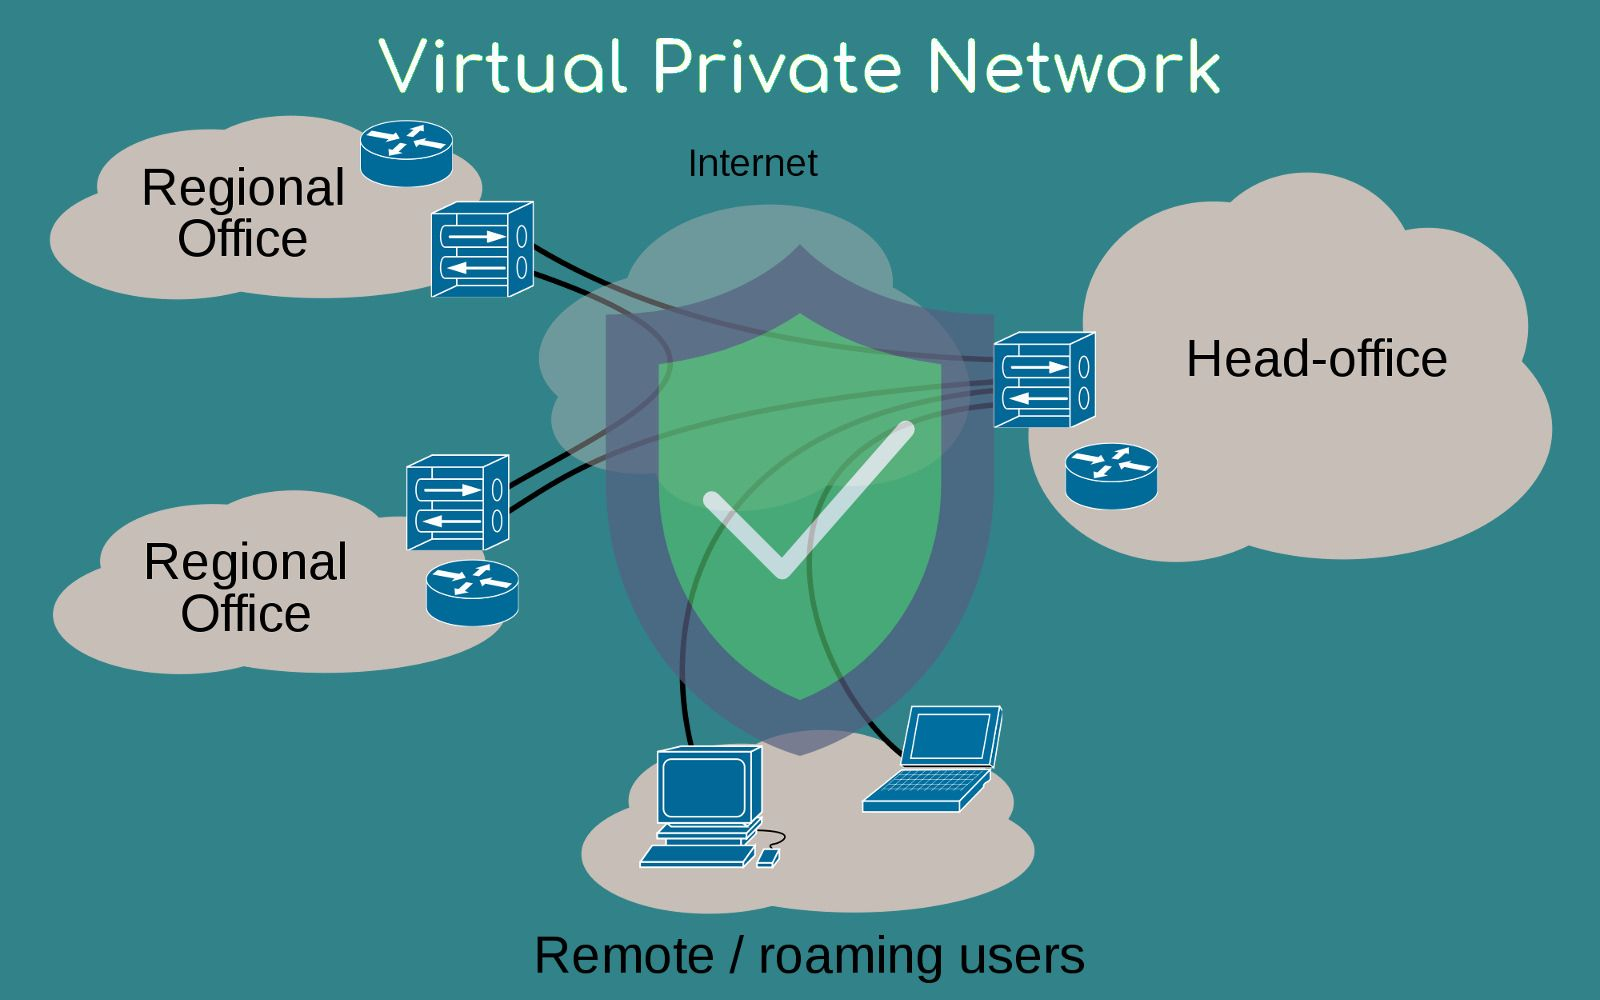 059a7905993824bcb935cf34804f0ac5 - Does A Vpn Really Protect You